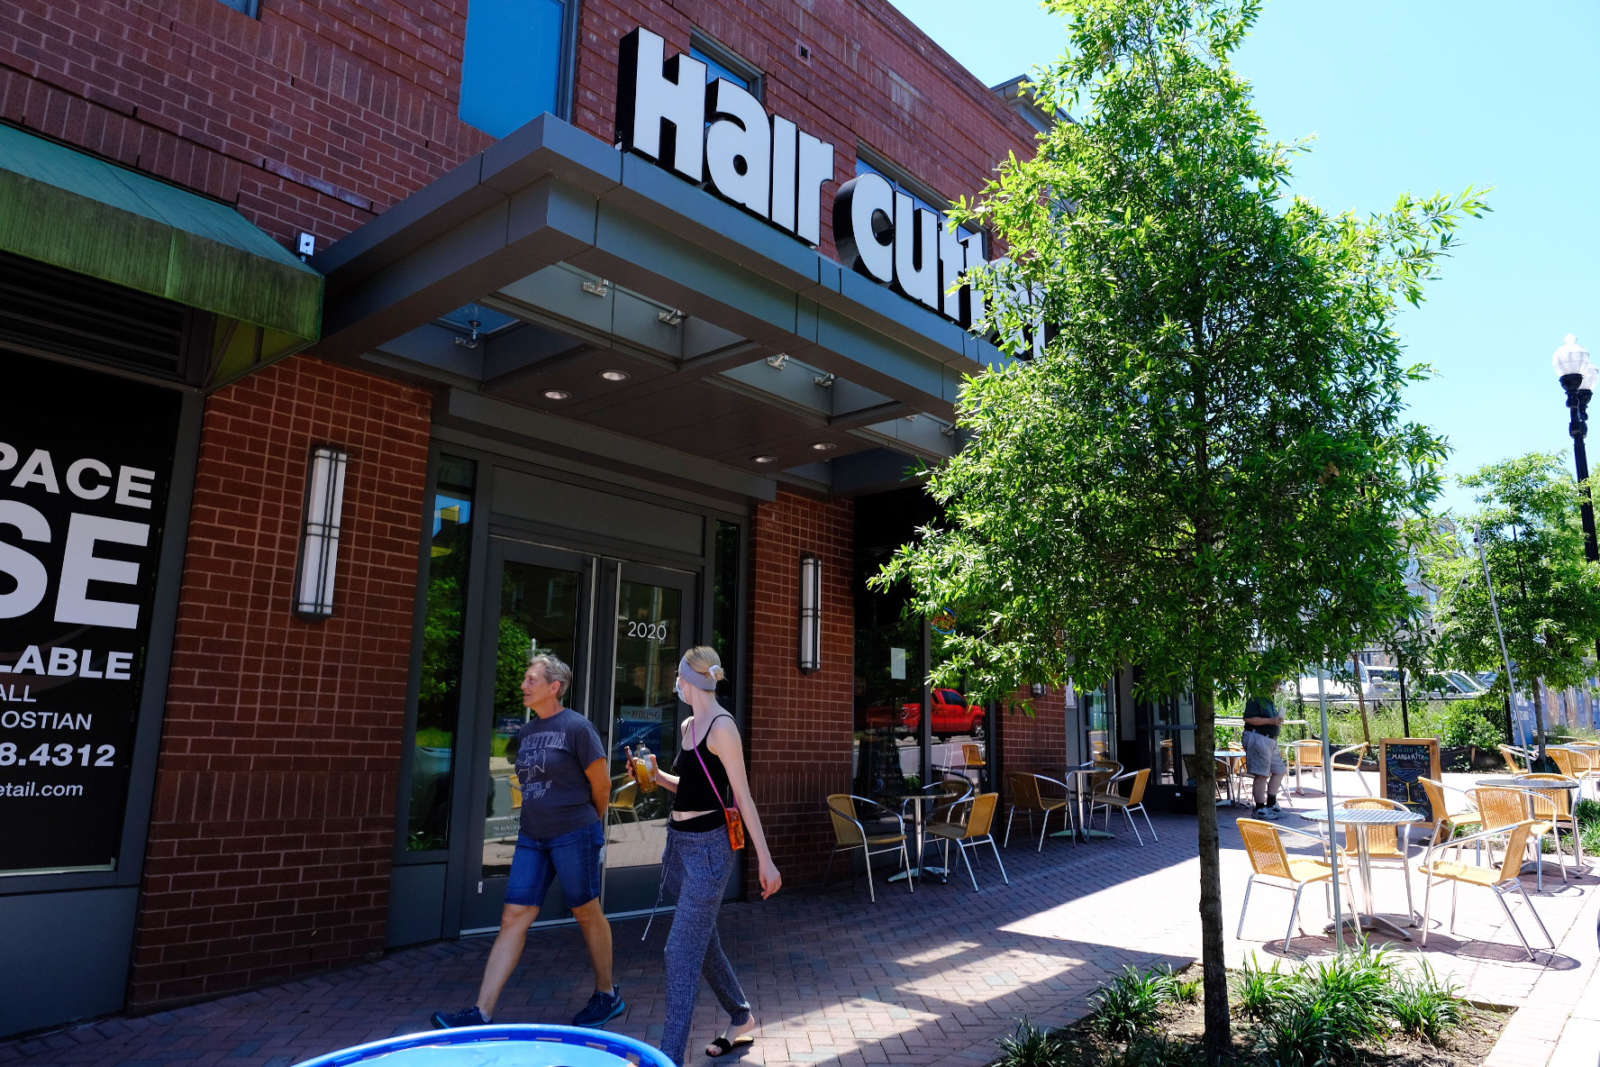 Hair Cuttery Courthouse Snipped From Official Listings Arlnow Com